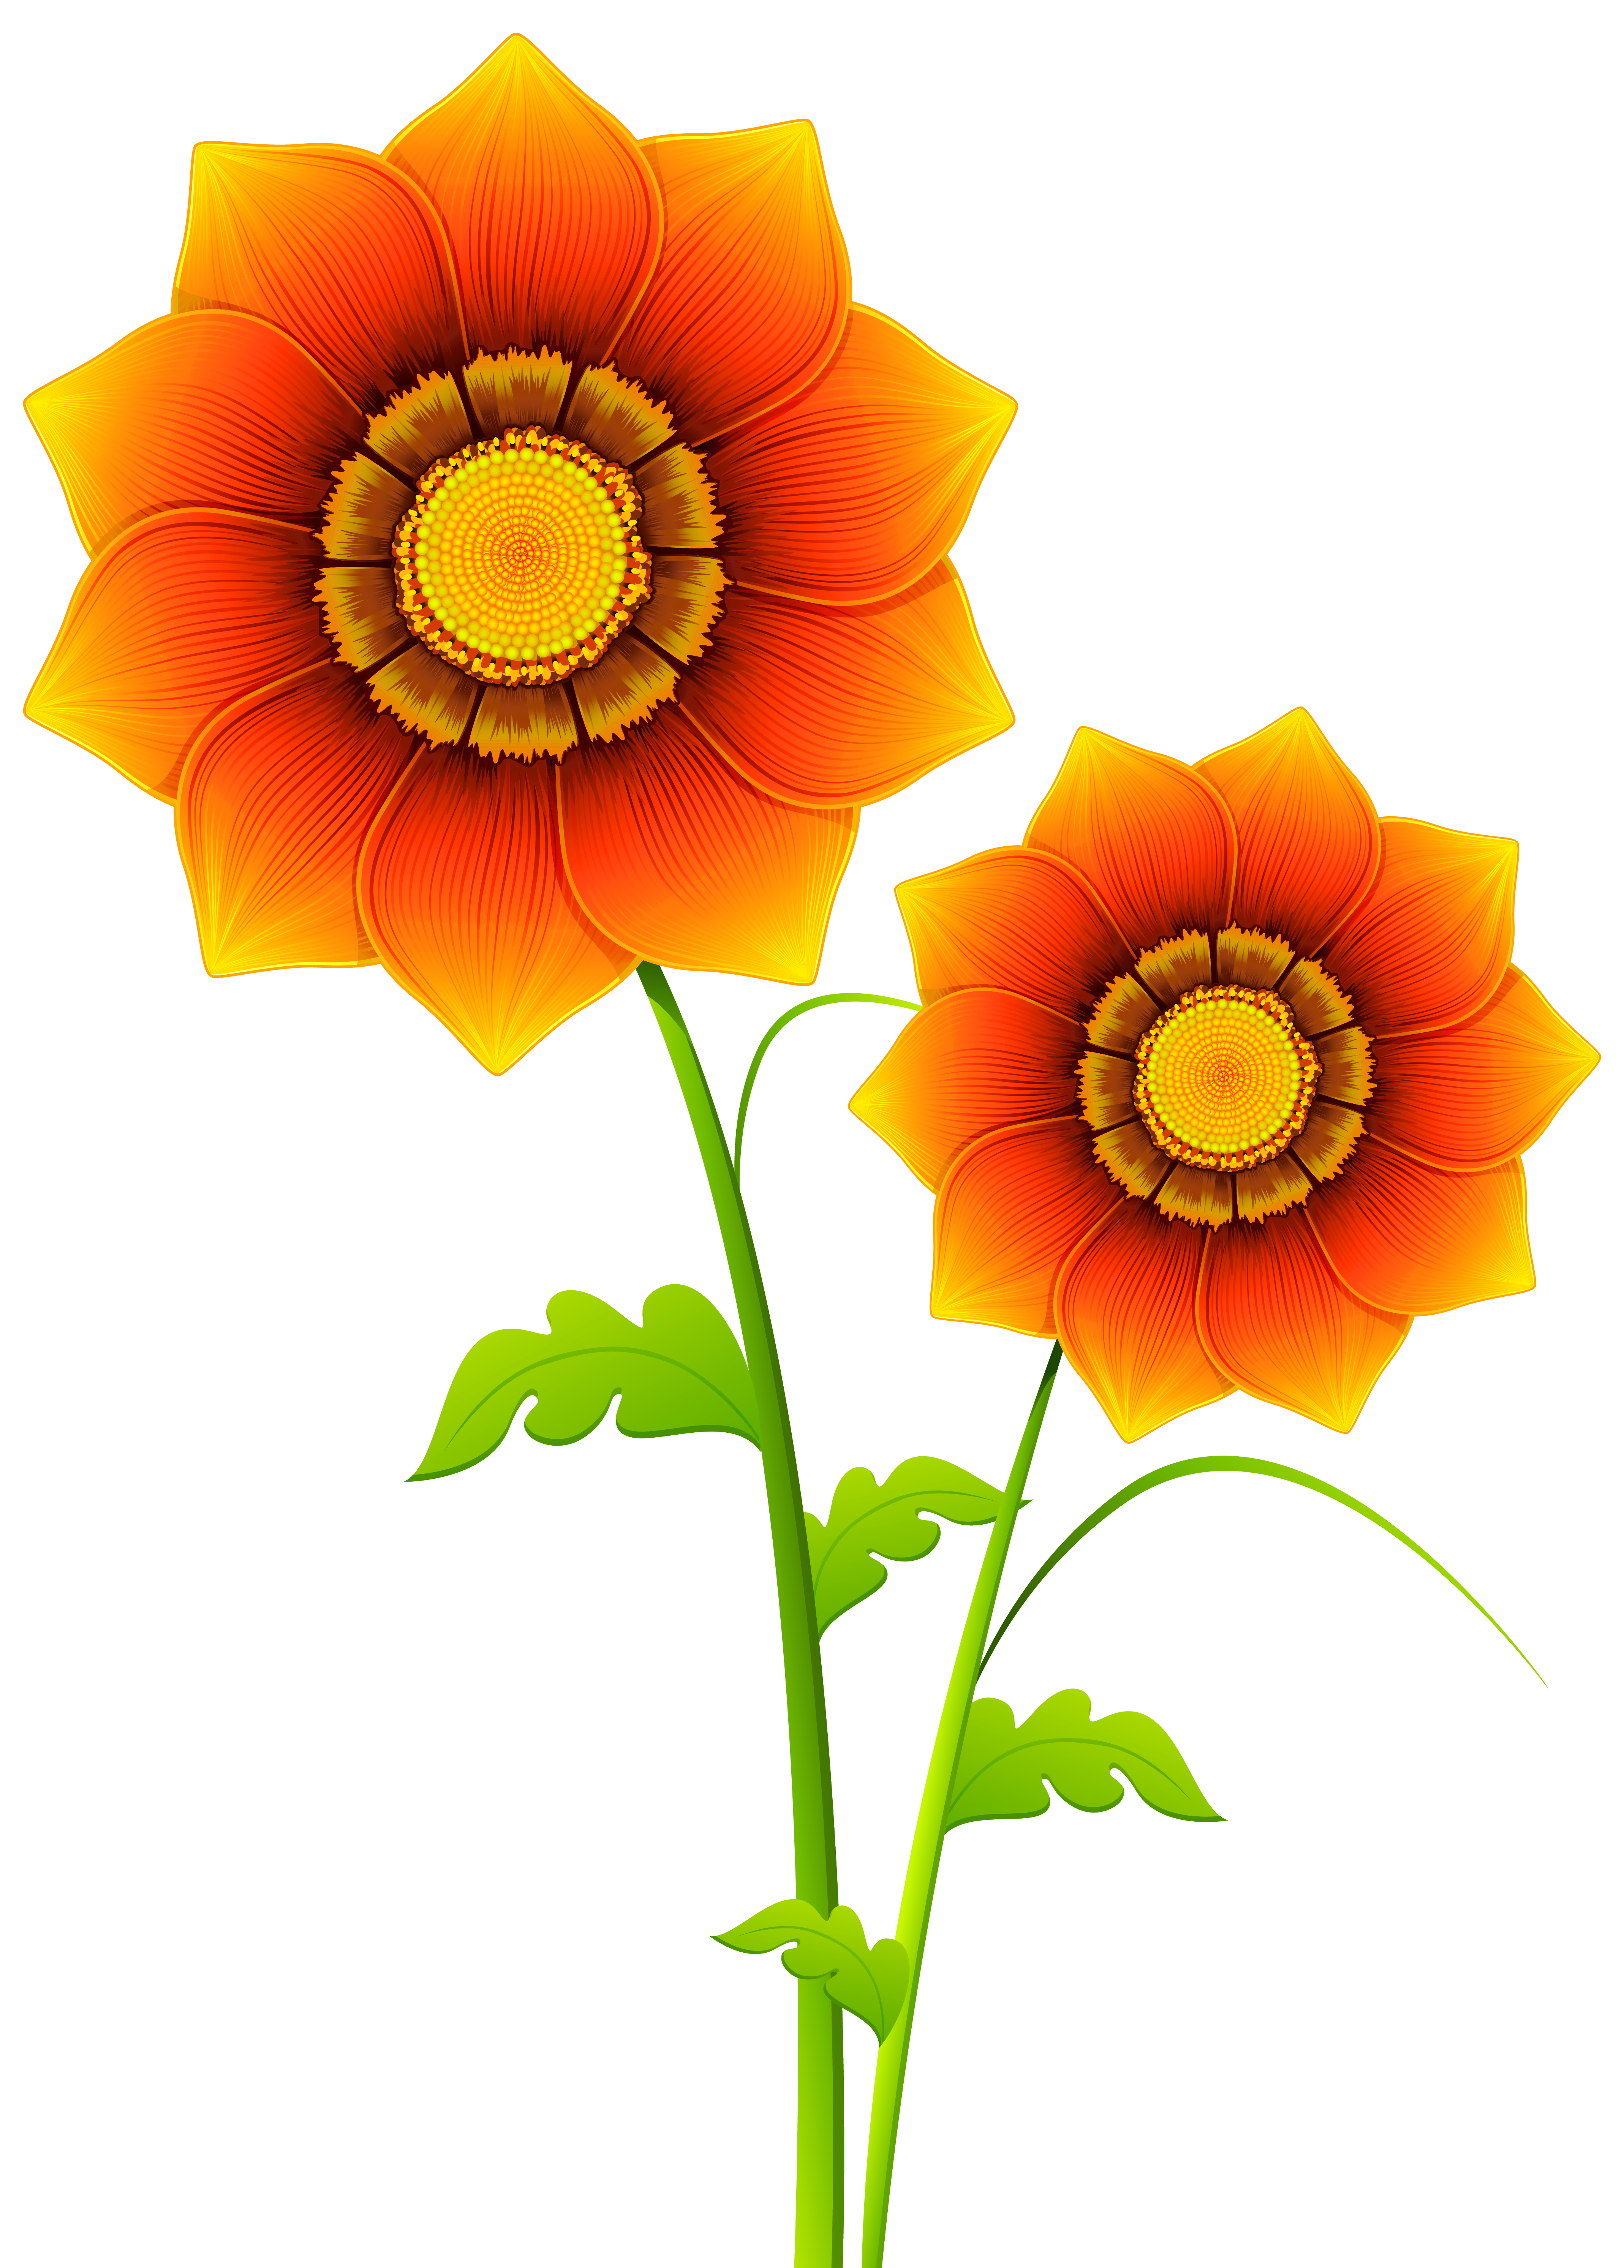 collection of flower. Plant clipart transparent background